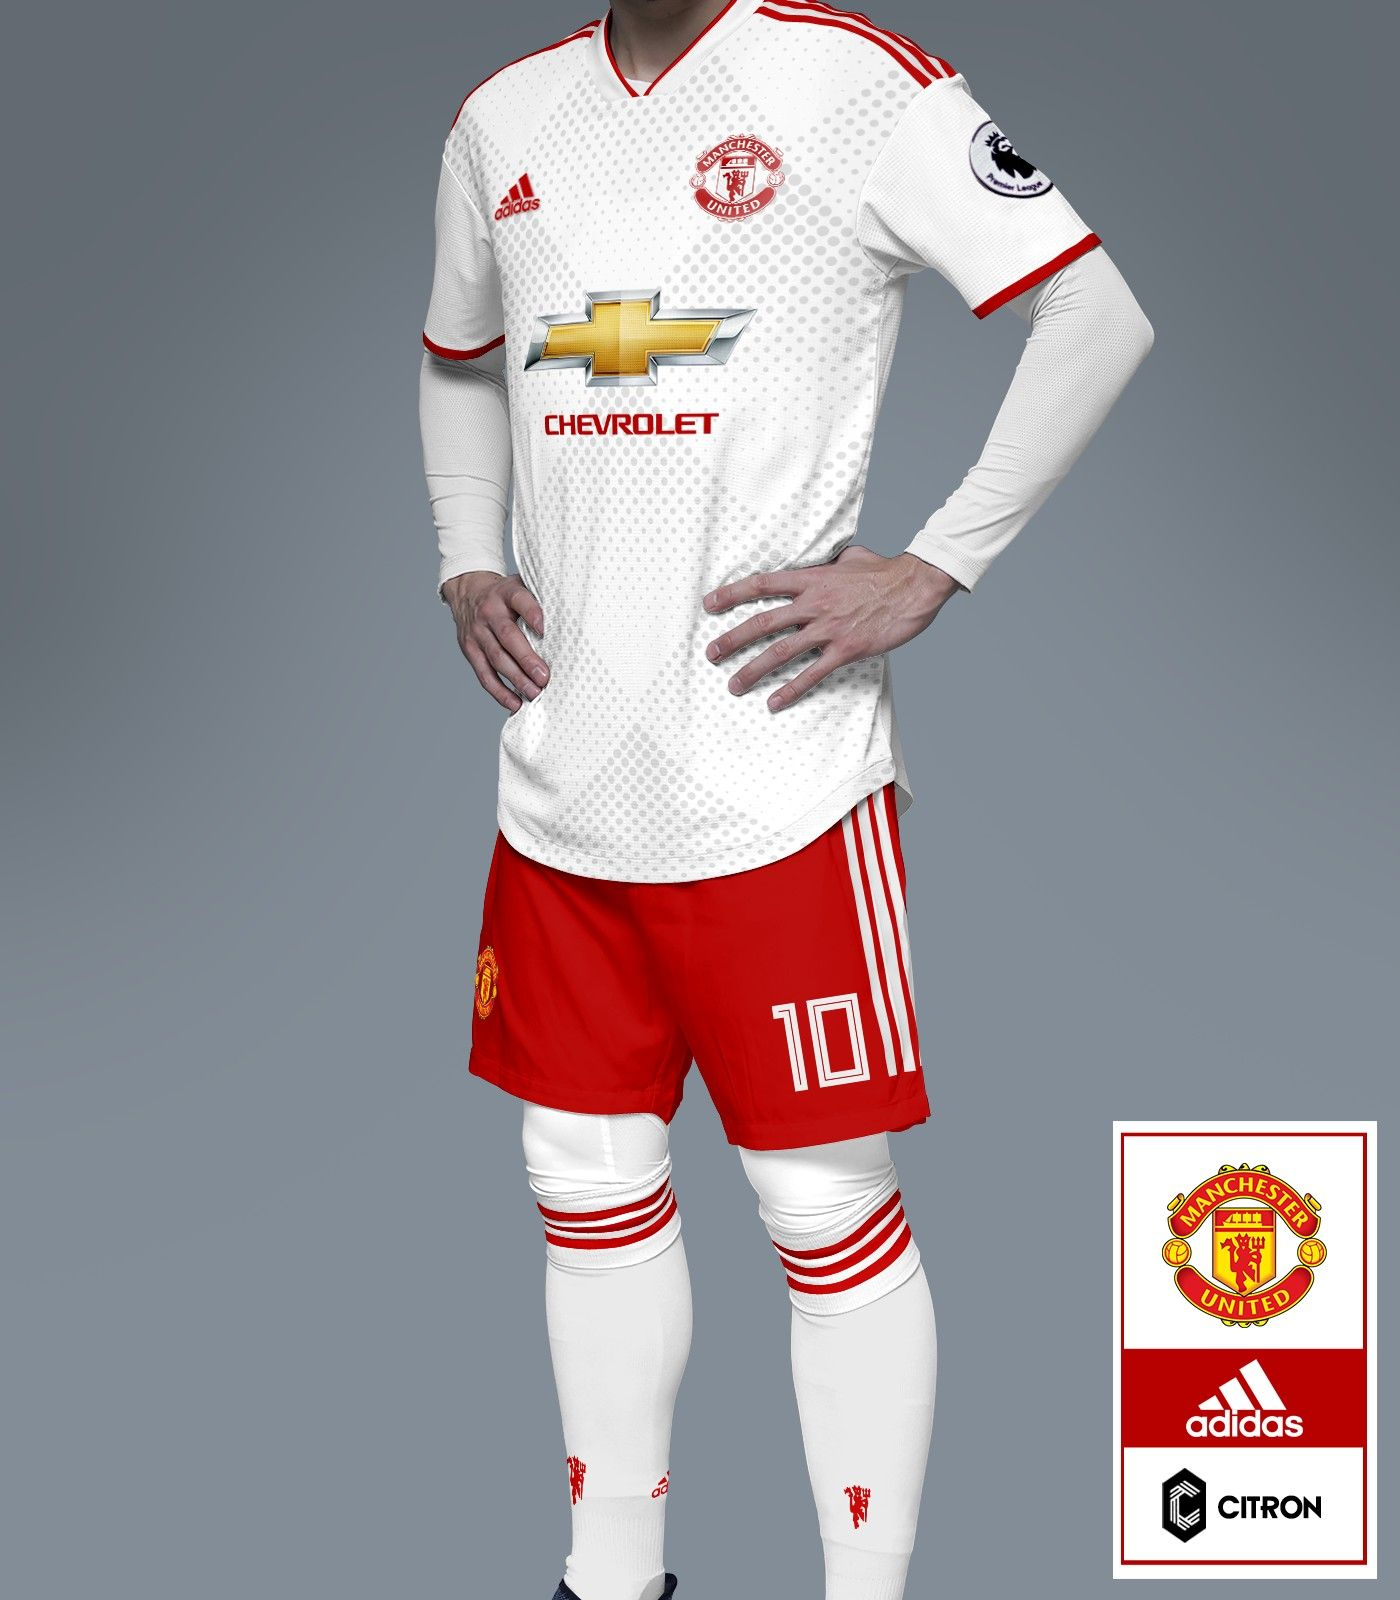 Manchester United Third Kit 2019 2020 Manchester United Third Kit 2019 2020 Camisa De Futebol Camisas De Futebol Uniformes Futebol